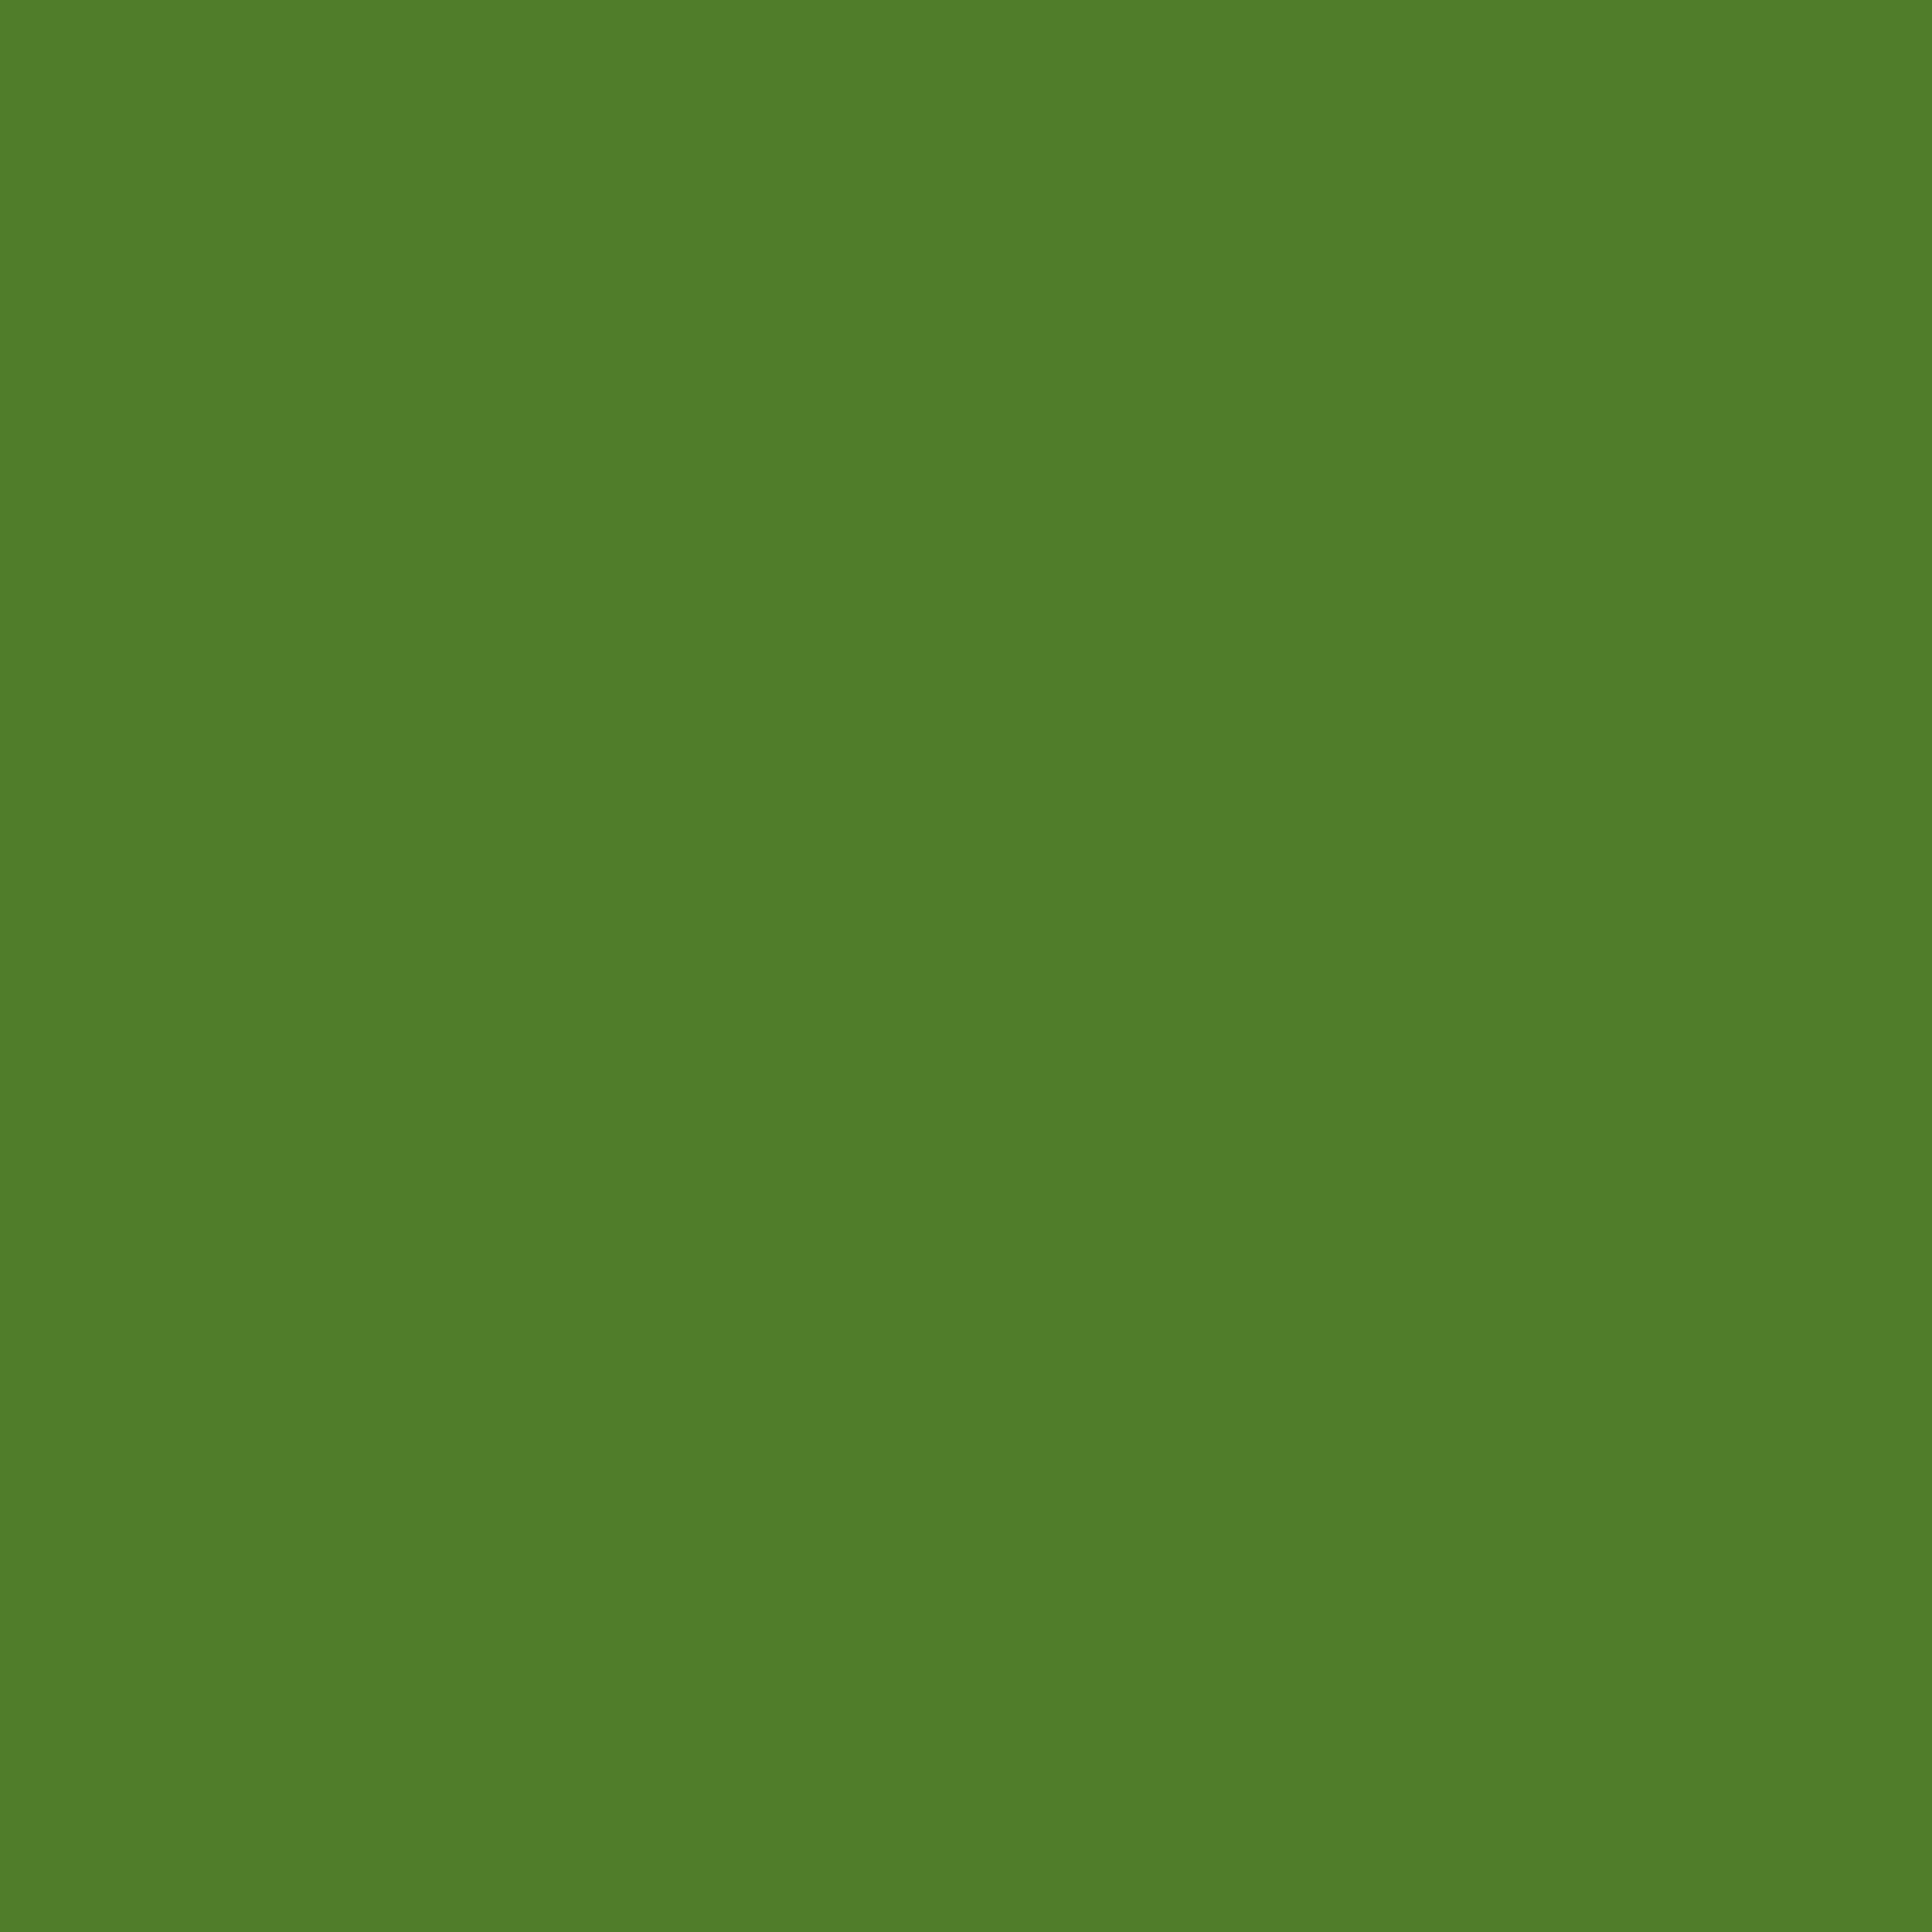 3600x3600 Sap Green Solid Color Background